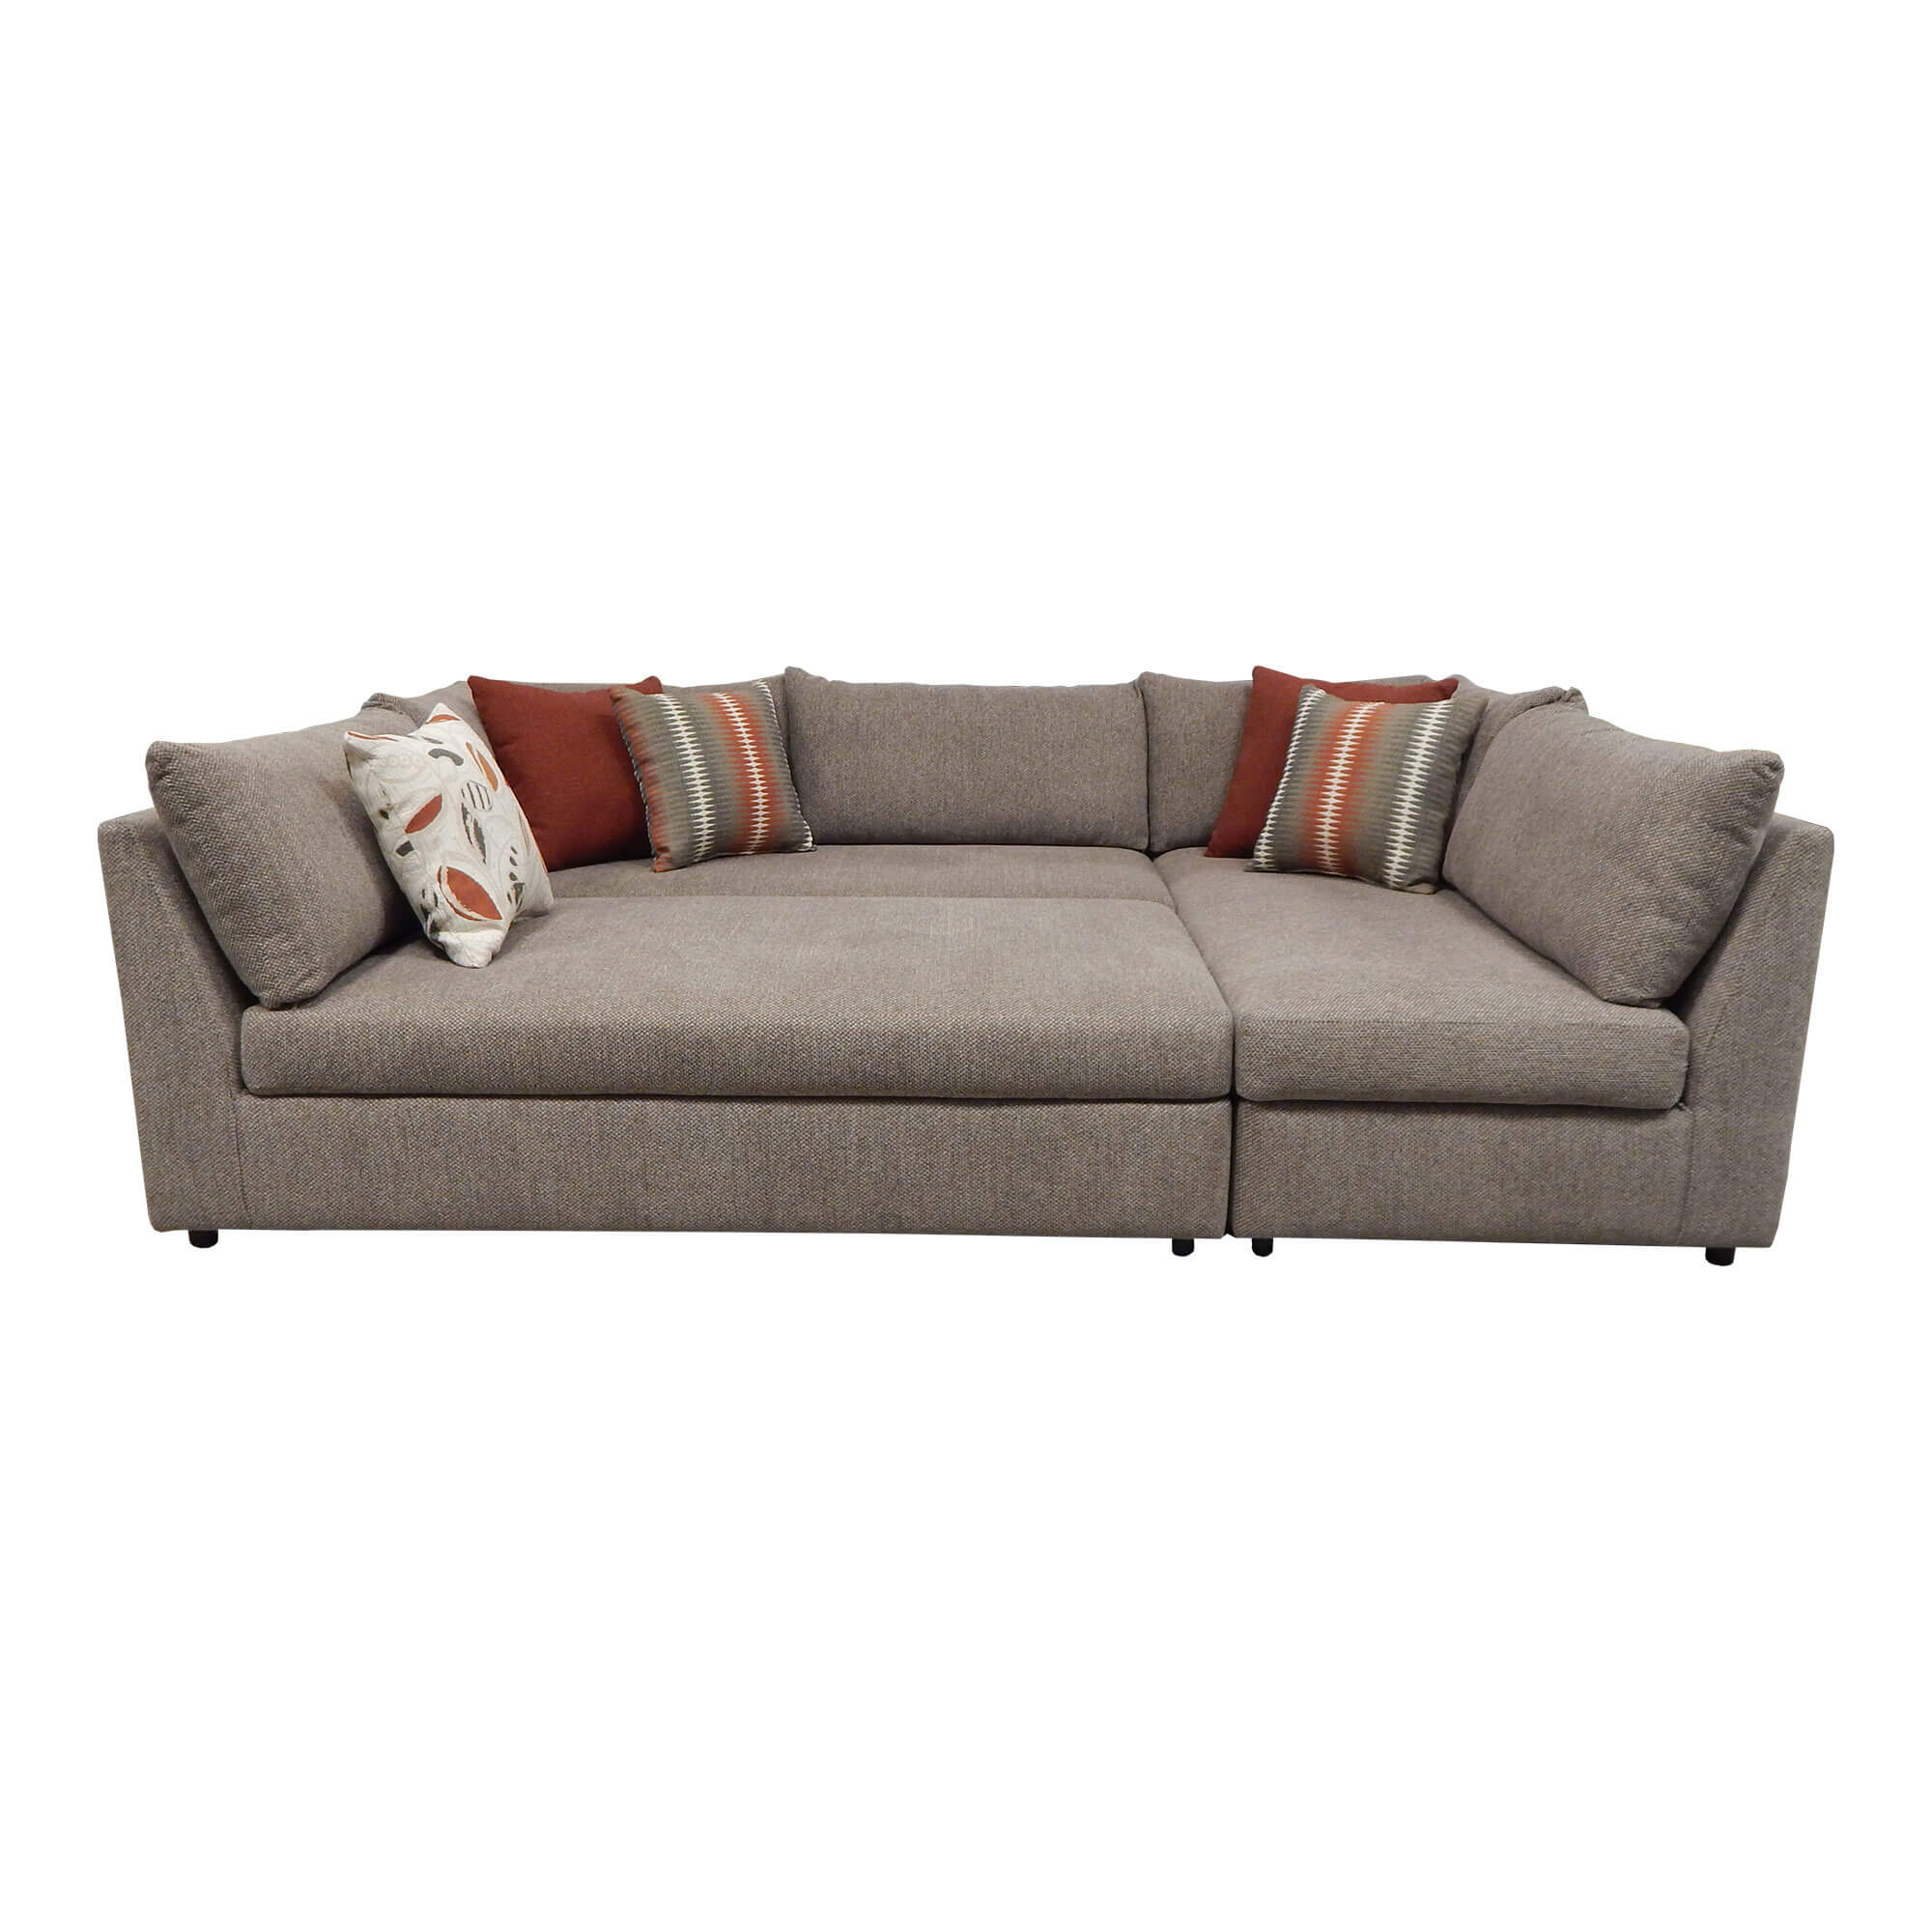 Picture of: Rent To Own Woodhaven 3 Piece Puzzle Chaise Sectional Sofa At Aaron S Today